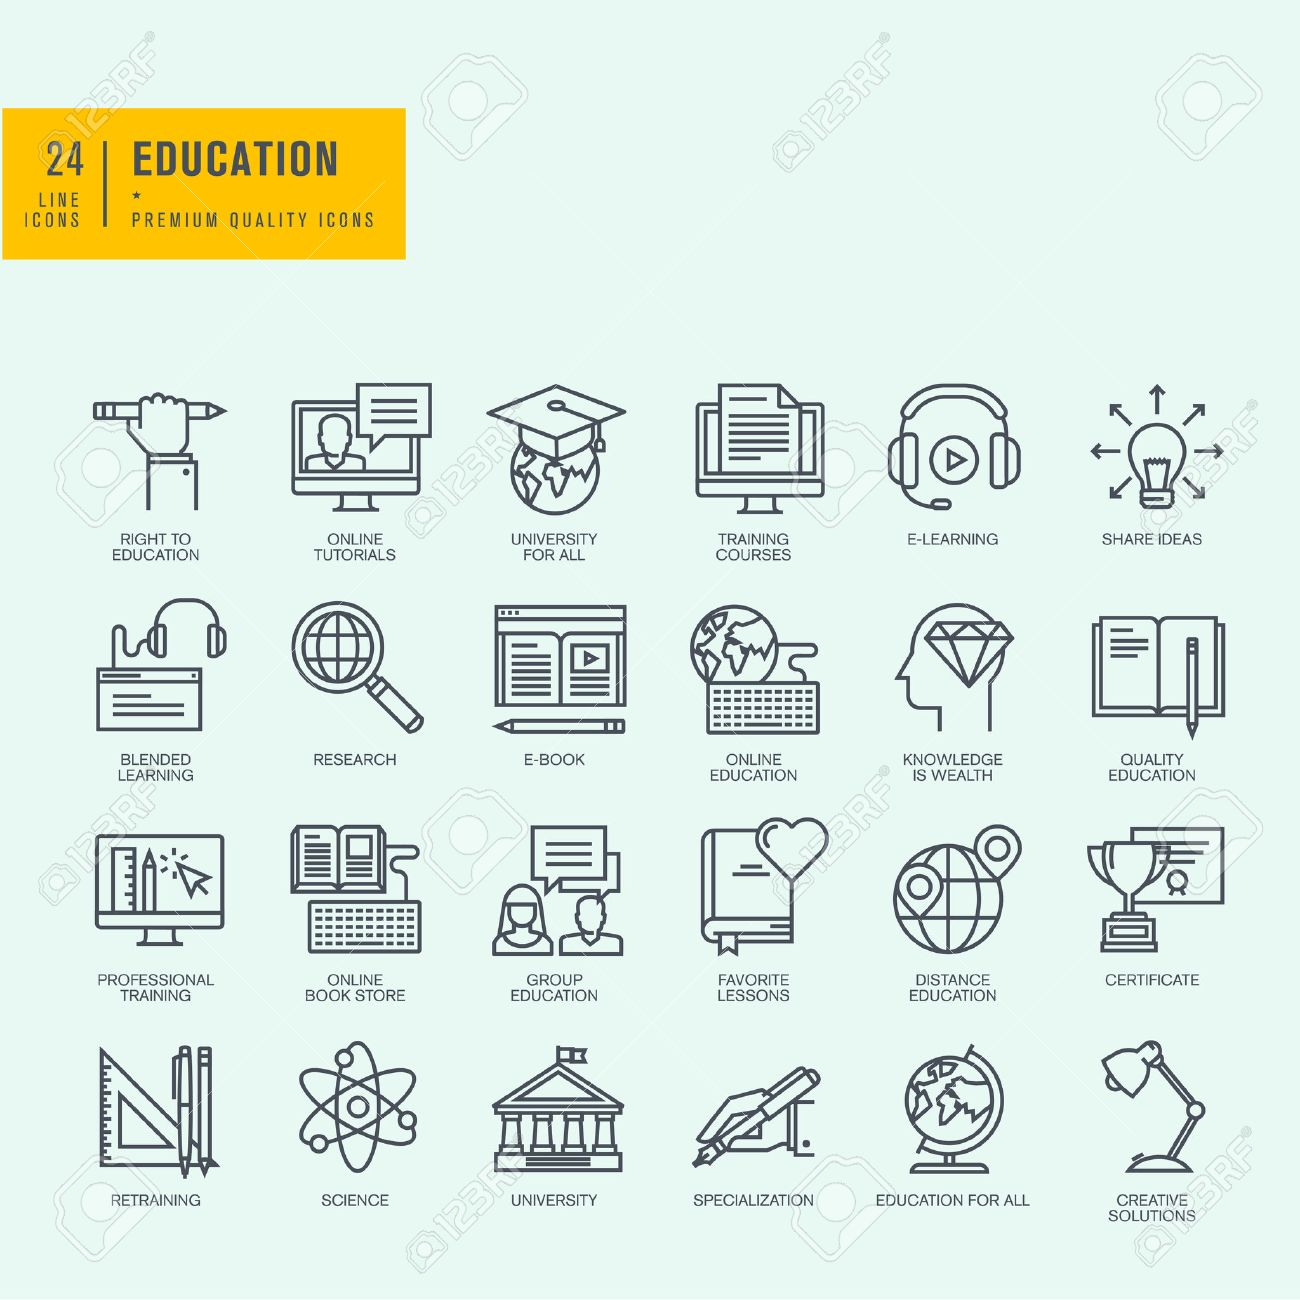 Thin line icons set icons for online education online tutorials icons for online education online tutorials training courses online book store baditri Gallery